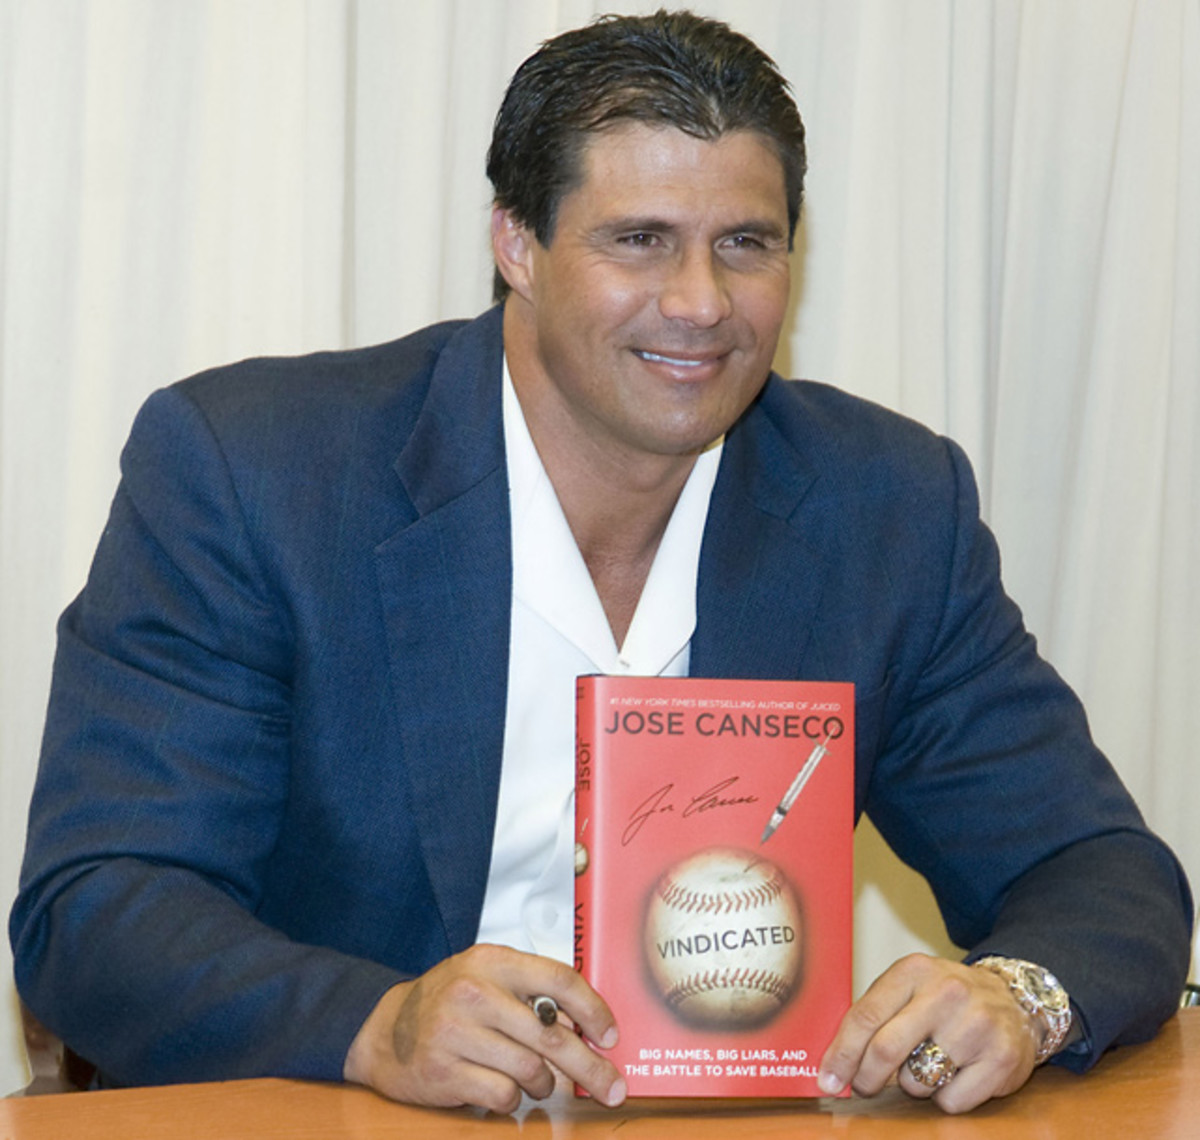 jose-canseco-vindicated.jpg